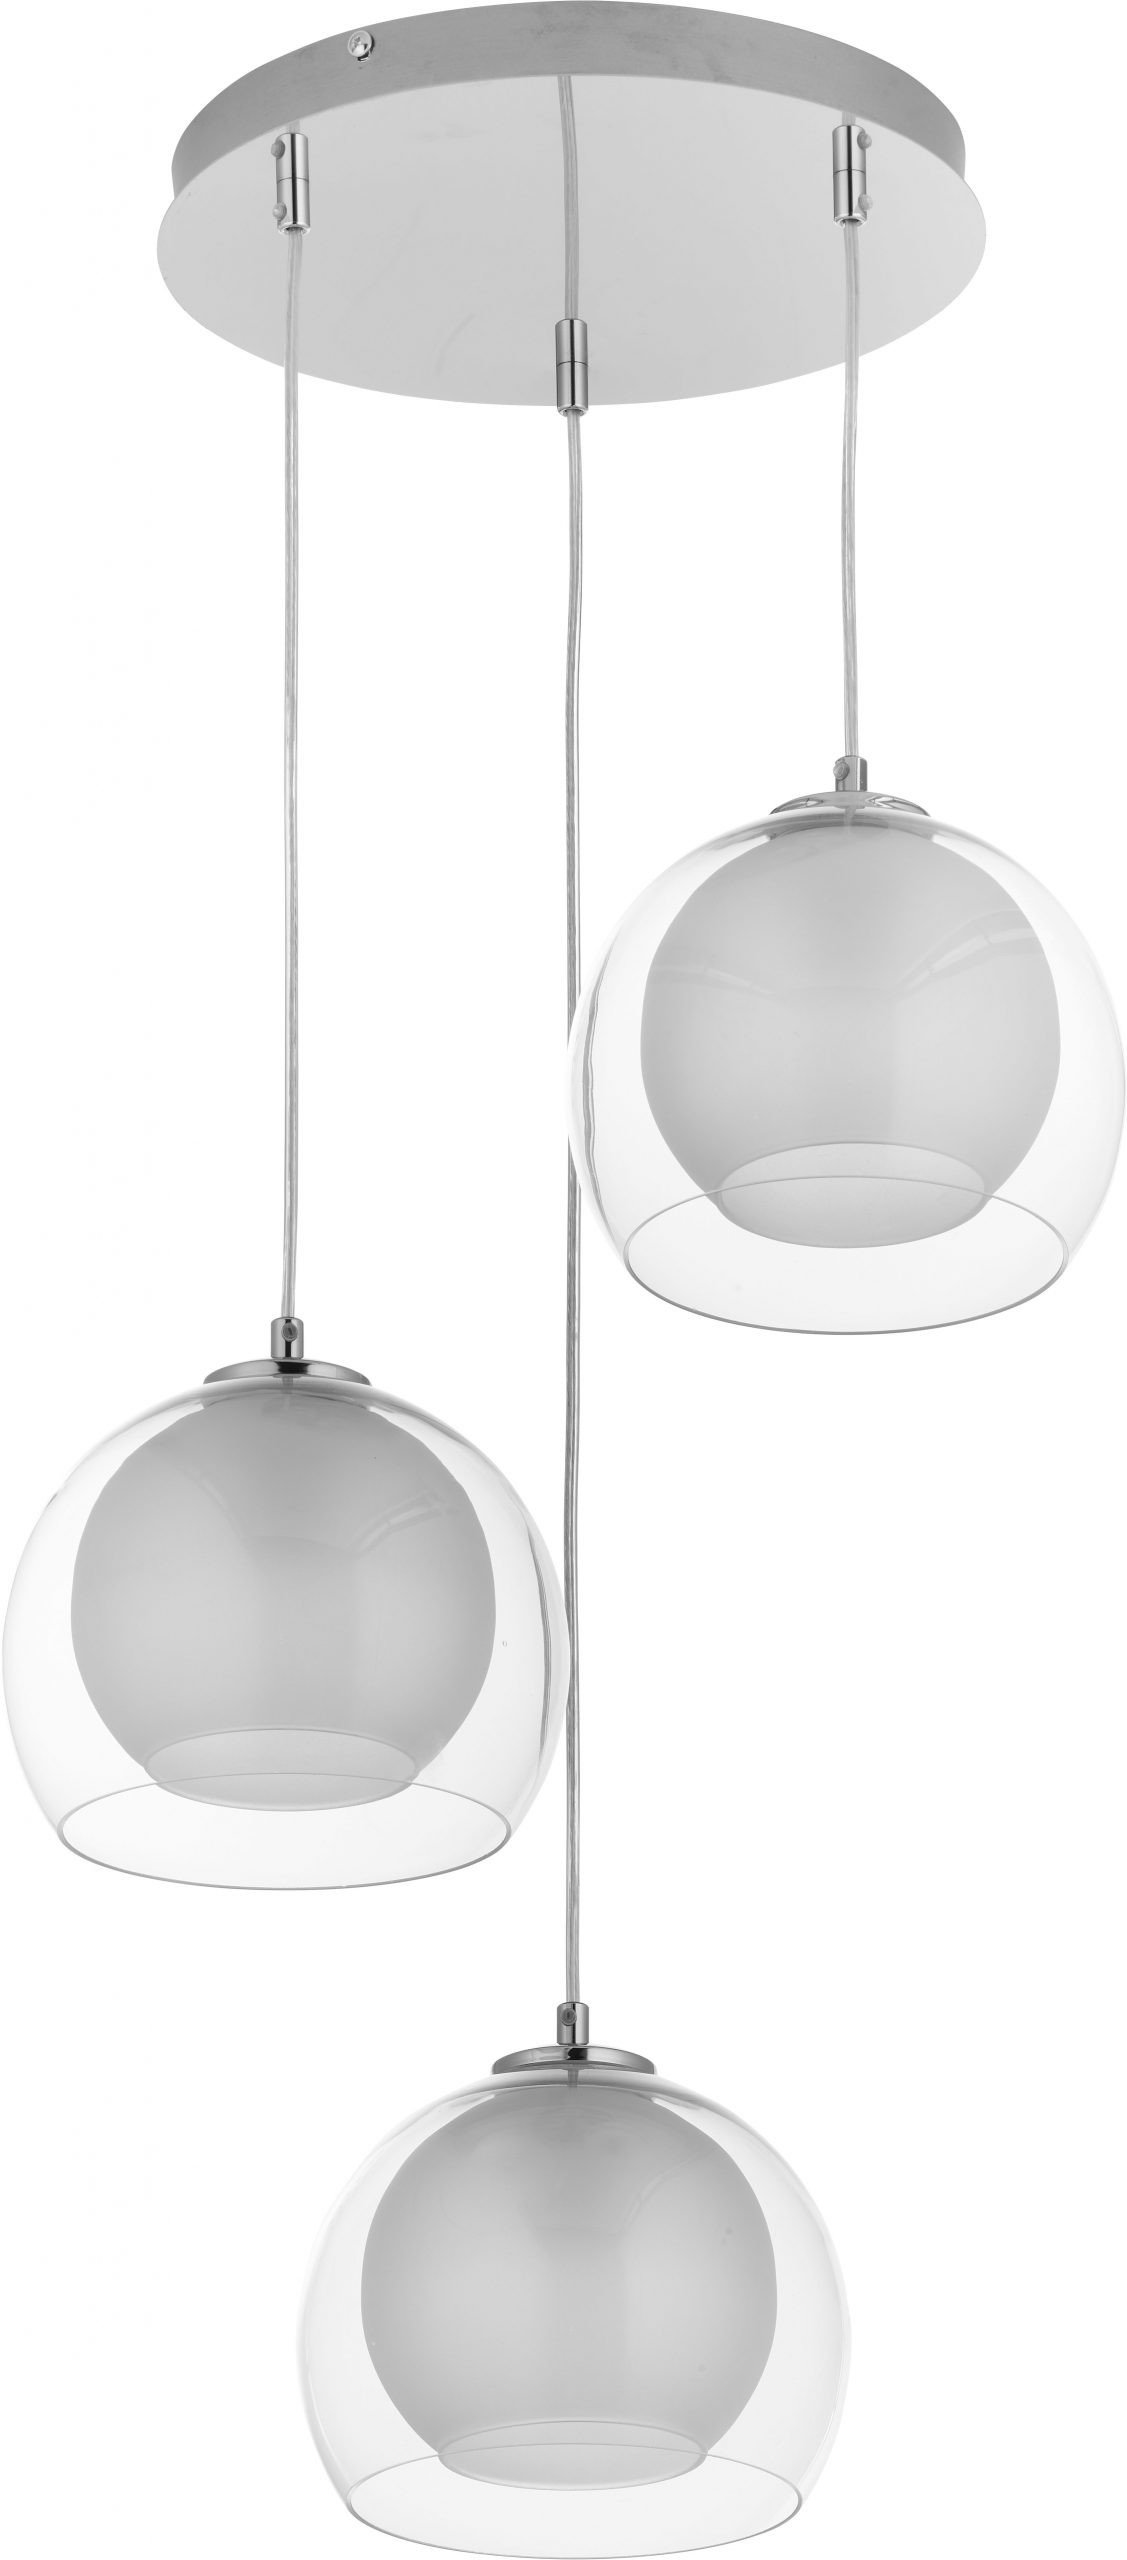 Подвес TK Lighting 2387 Napoli